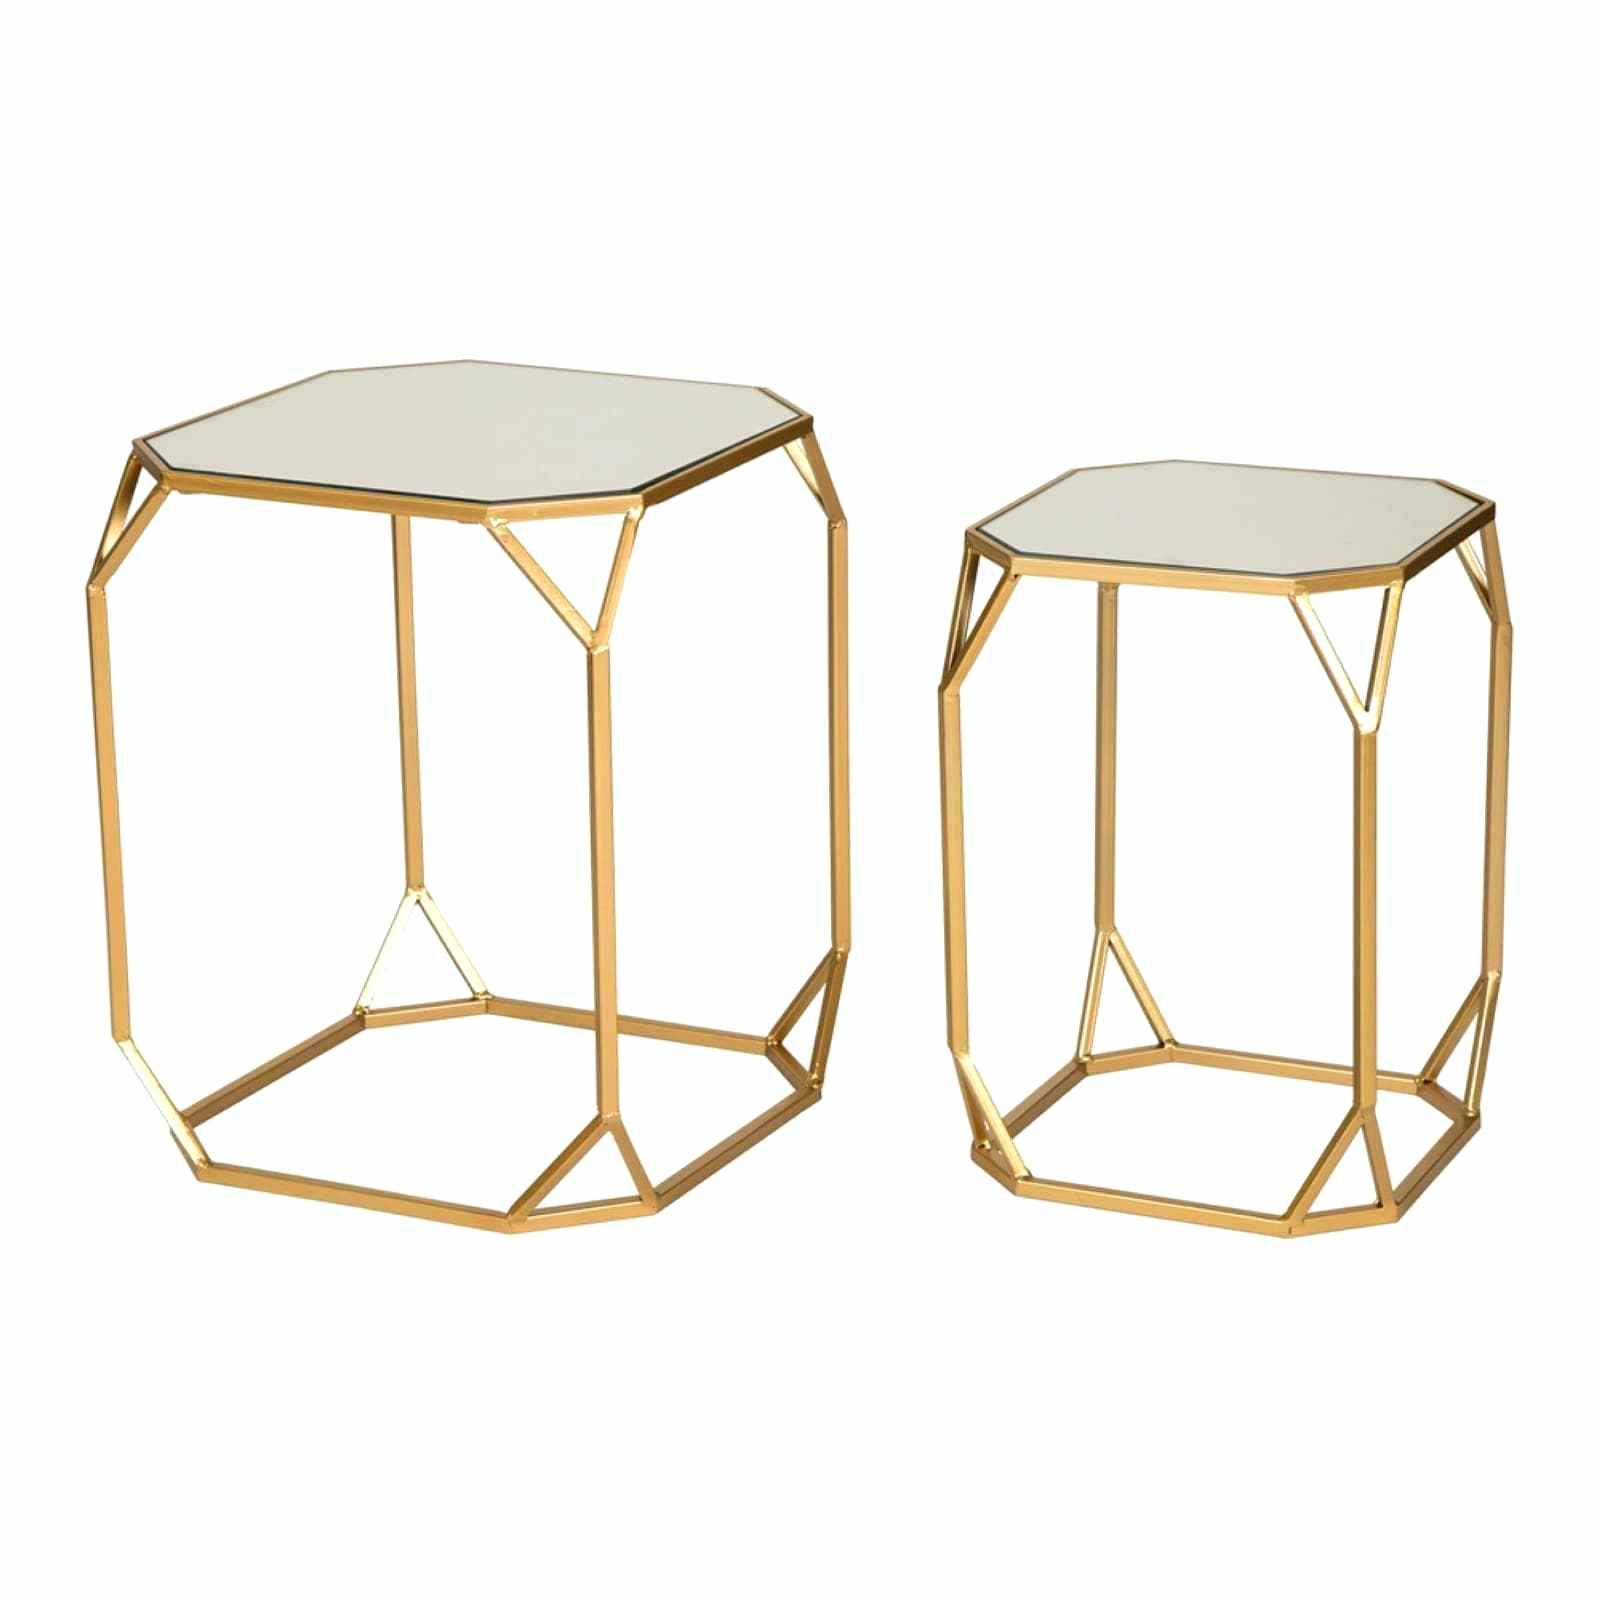 gold end tables with glass top ashley leather sofa set round marble coffee table cherry shaker style elegant cocktail drawer nightstand pet kennel crate magnolia home furniture